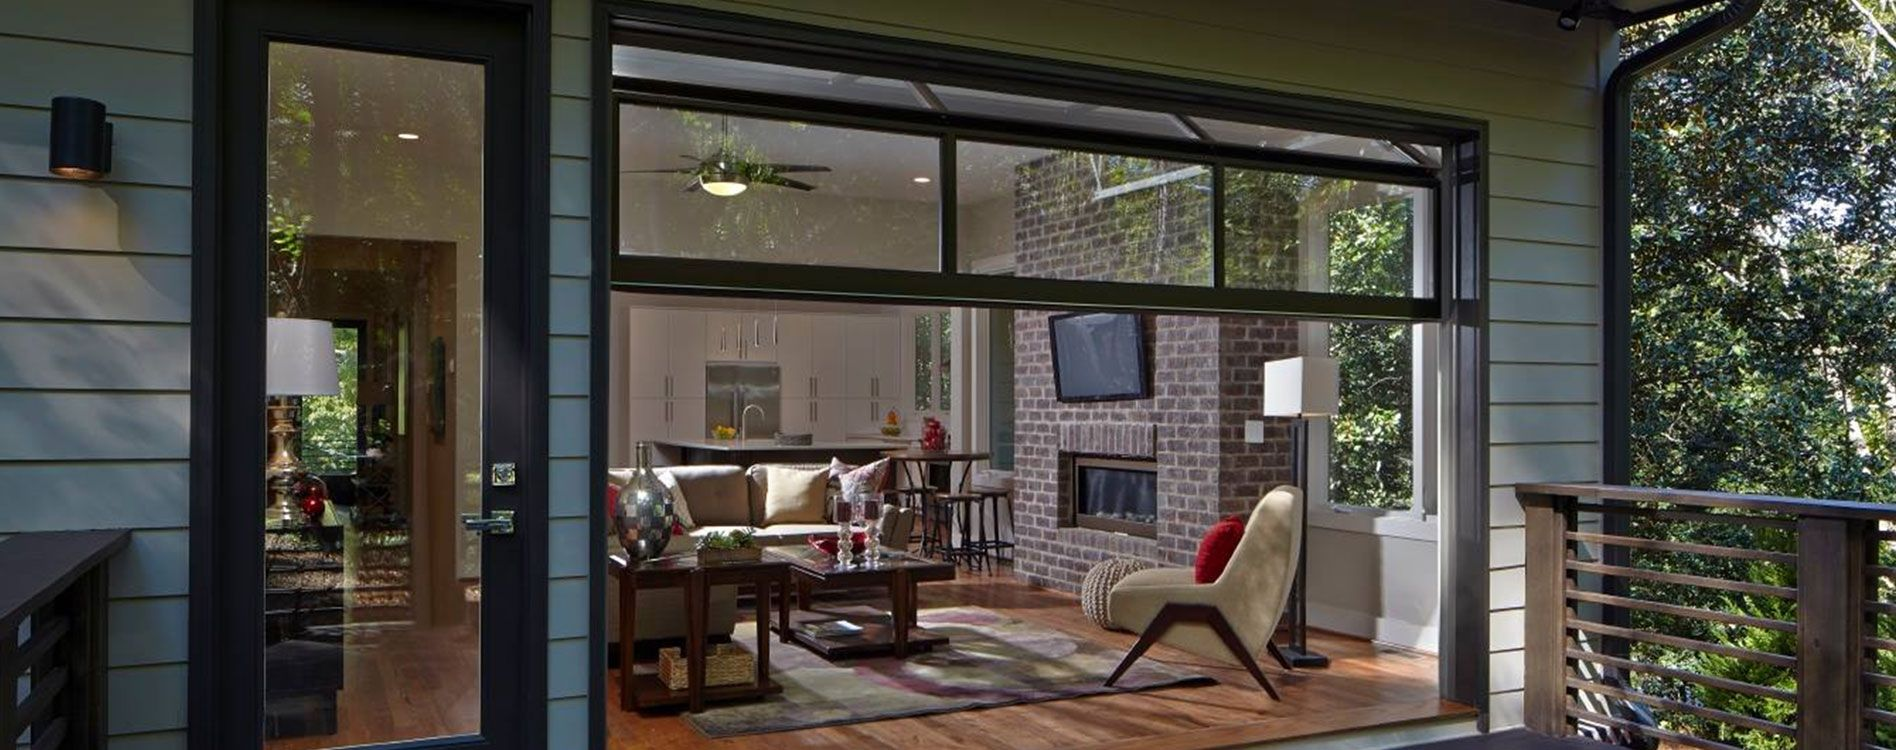 Insulated Clear Glass Garage Door Intended For Fantasy Http